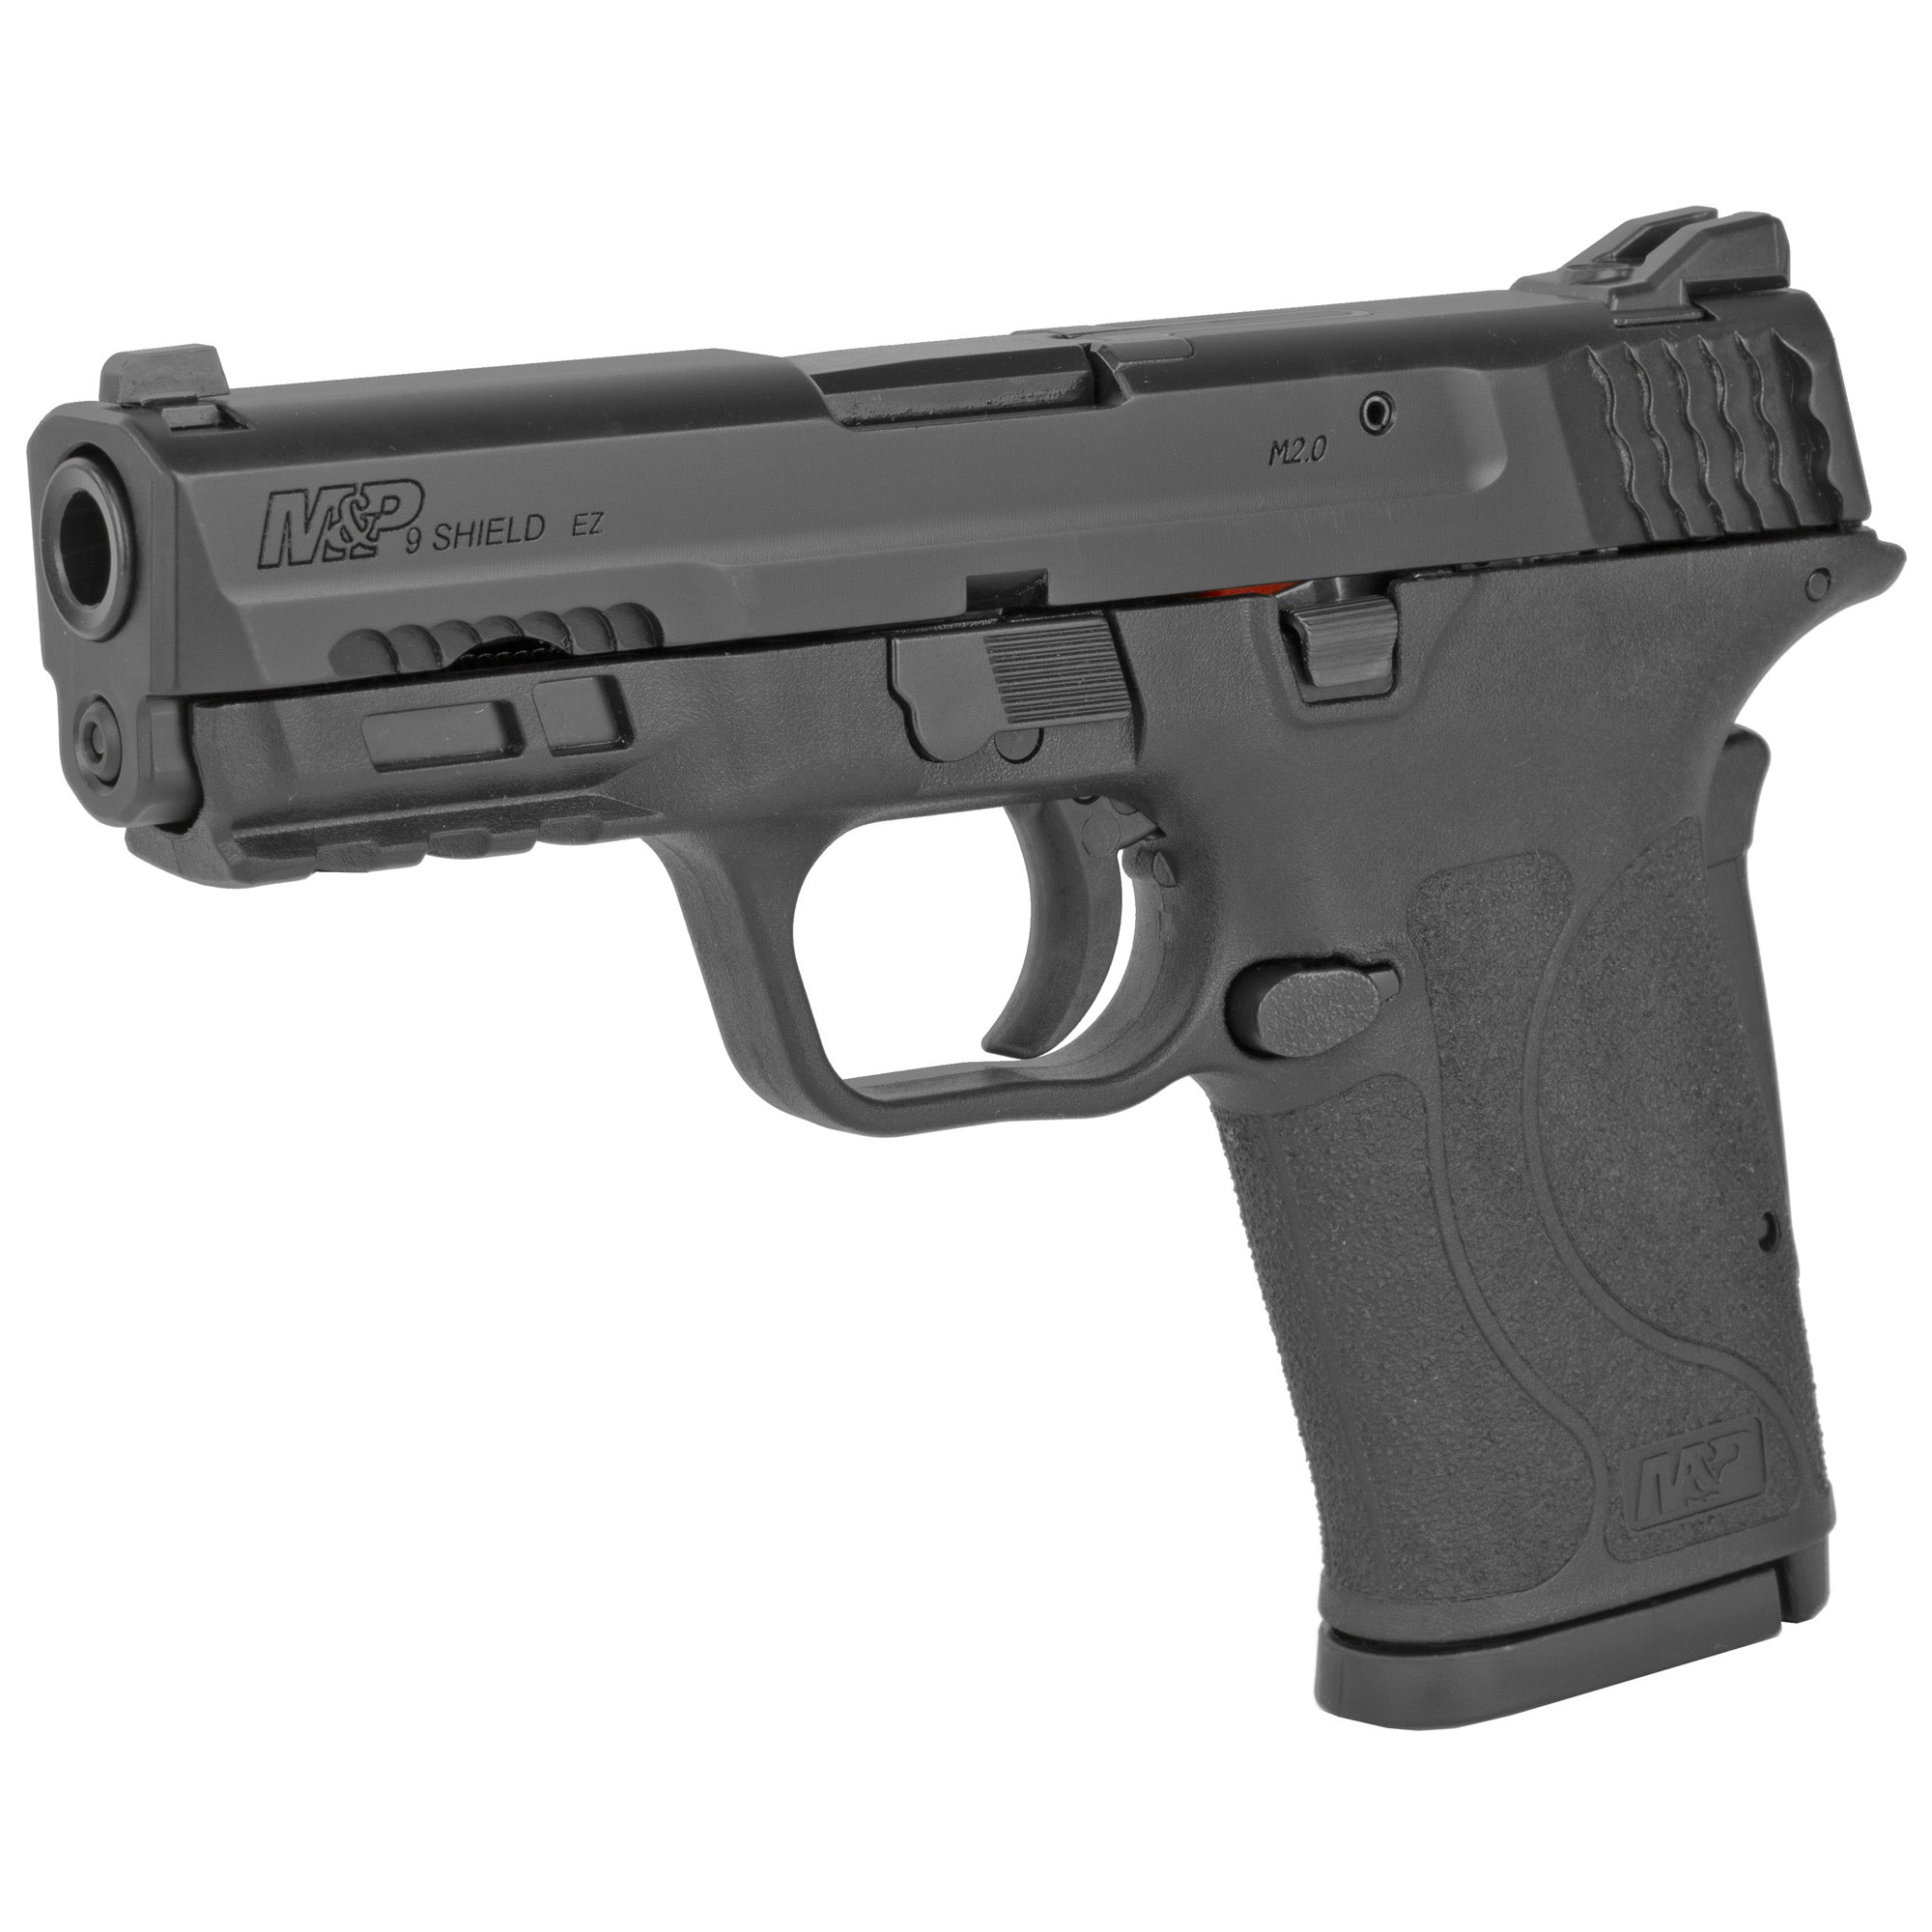 Smith & Wesson M&P 9 Shield EZ M2.0, 9mm, No Thumb Safety